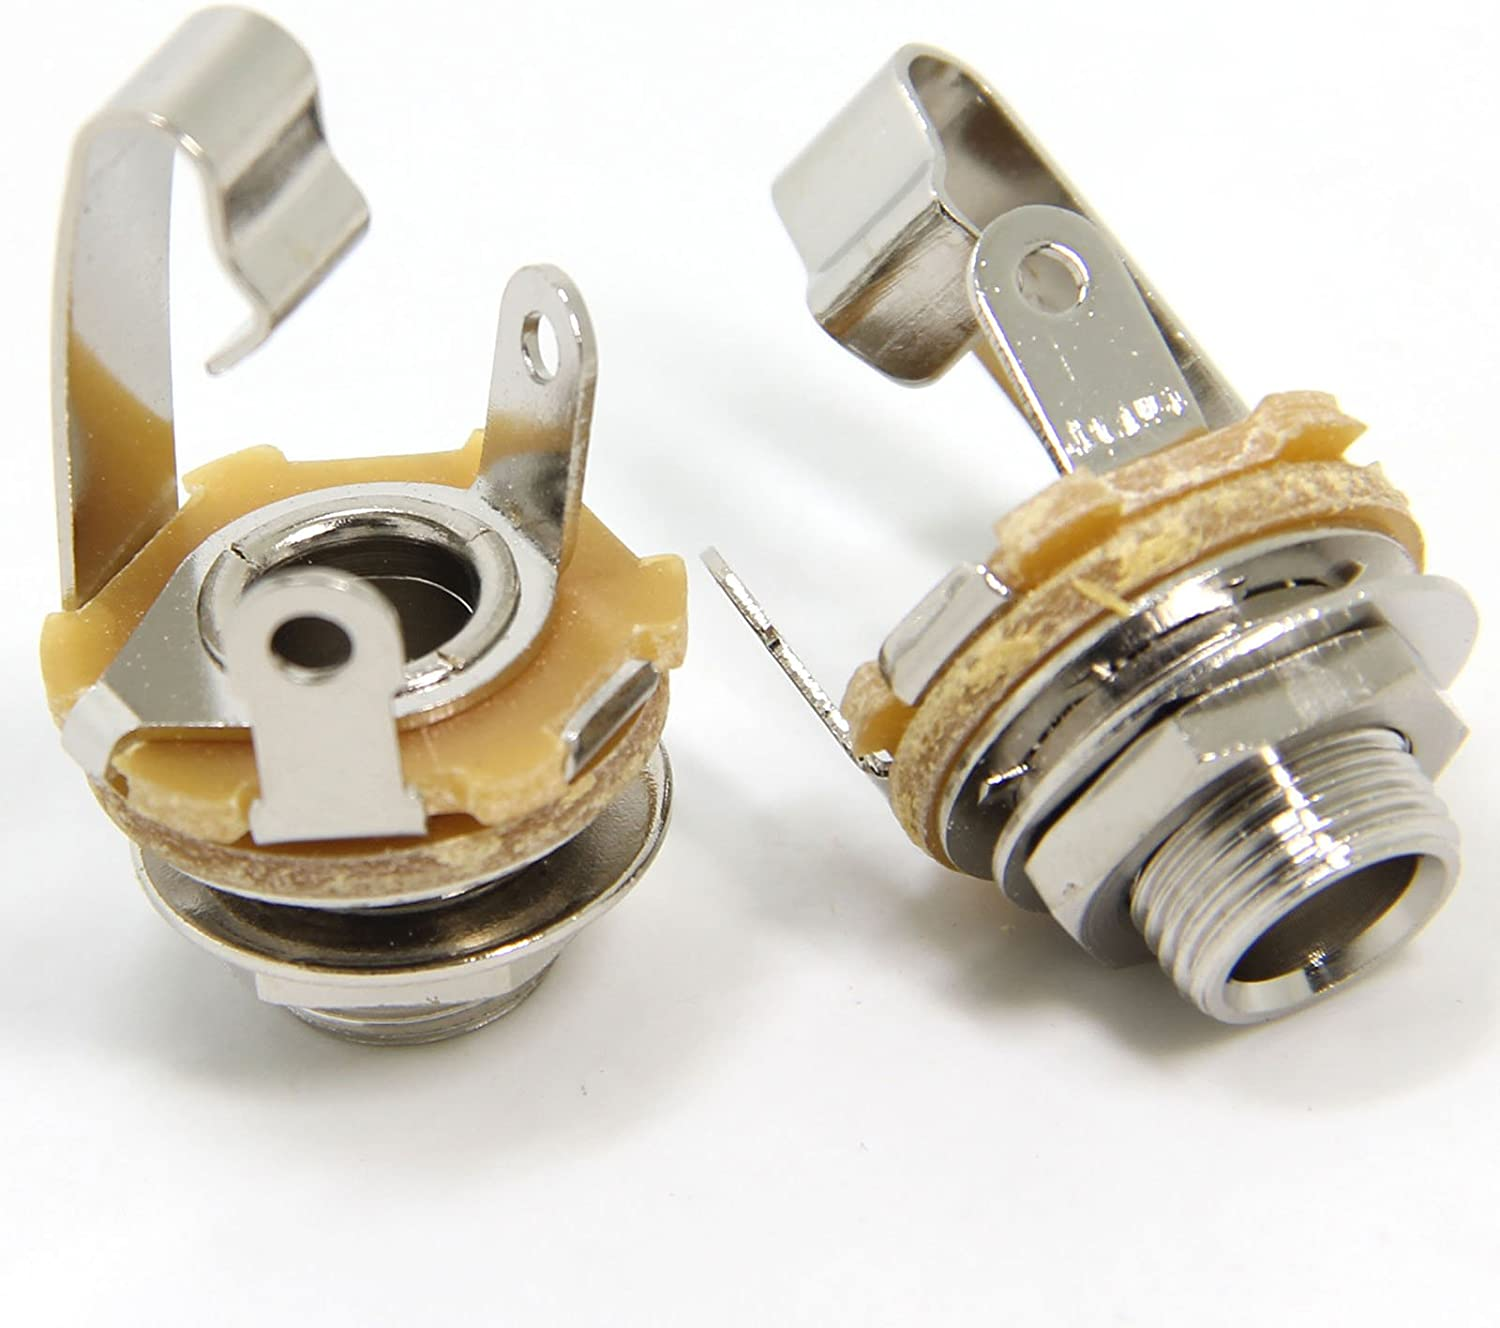 Amazon.com: Ancable 2-Pack 1/4 Inch Female Guitar Input Jack-6.35mm TS Mono  Panel Mount Socket with Washer and Nut Solder Type: Musical InstrumentsAmazon.com